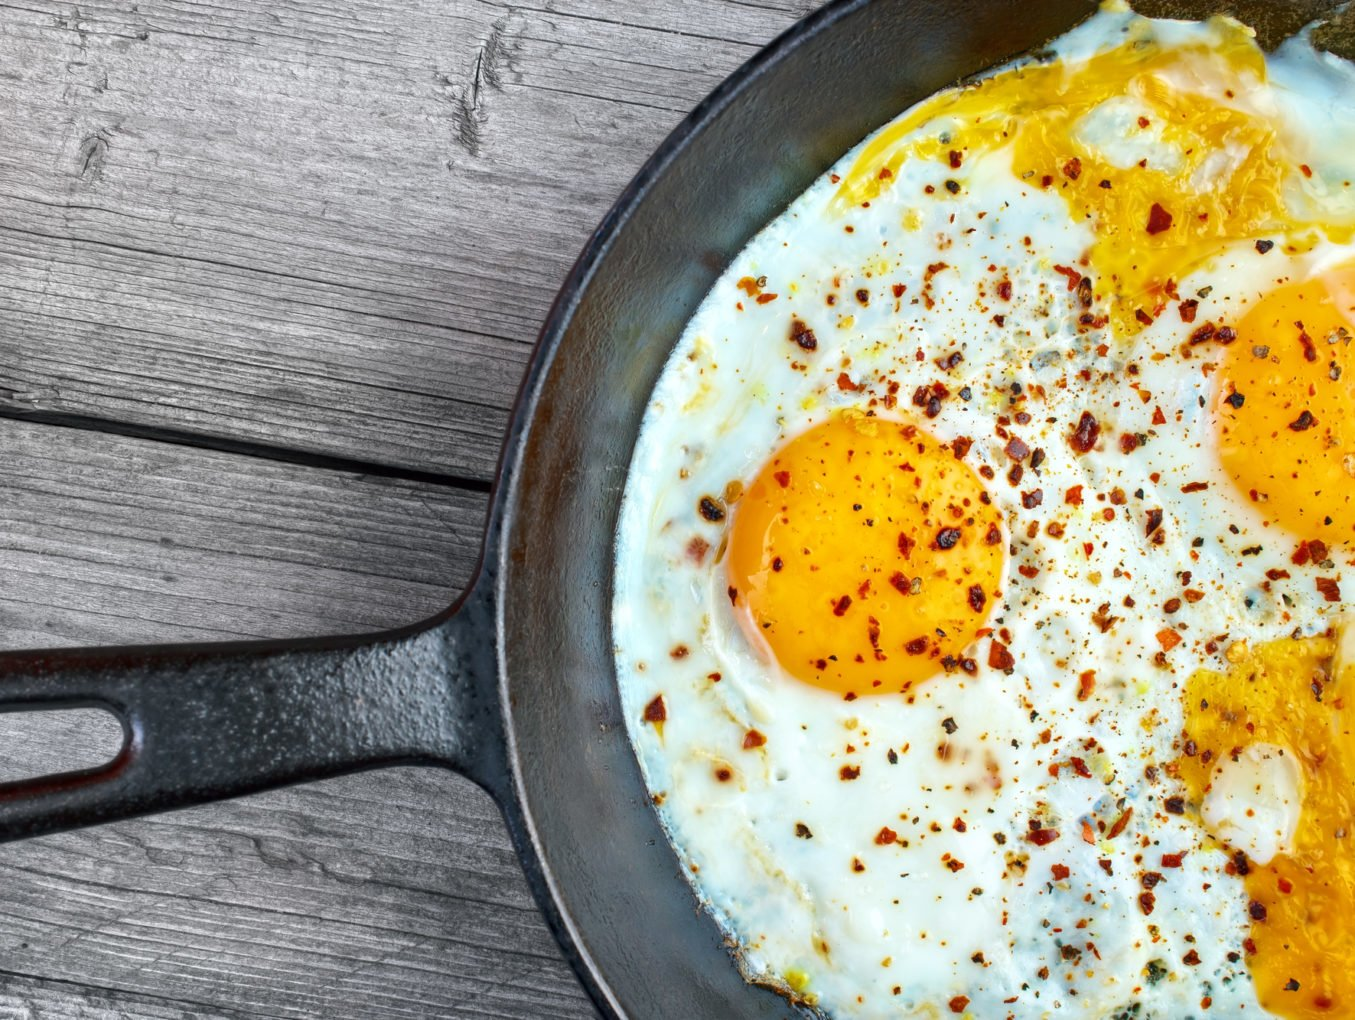 7 Indian Keto Diet Recipes With Eggs For Diabetes & Weight Loss - Part 1